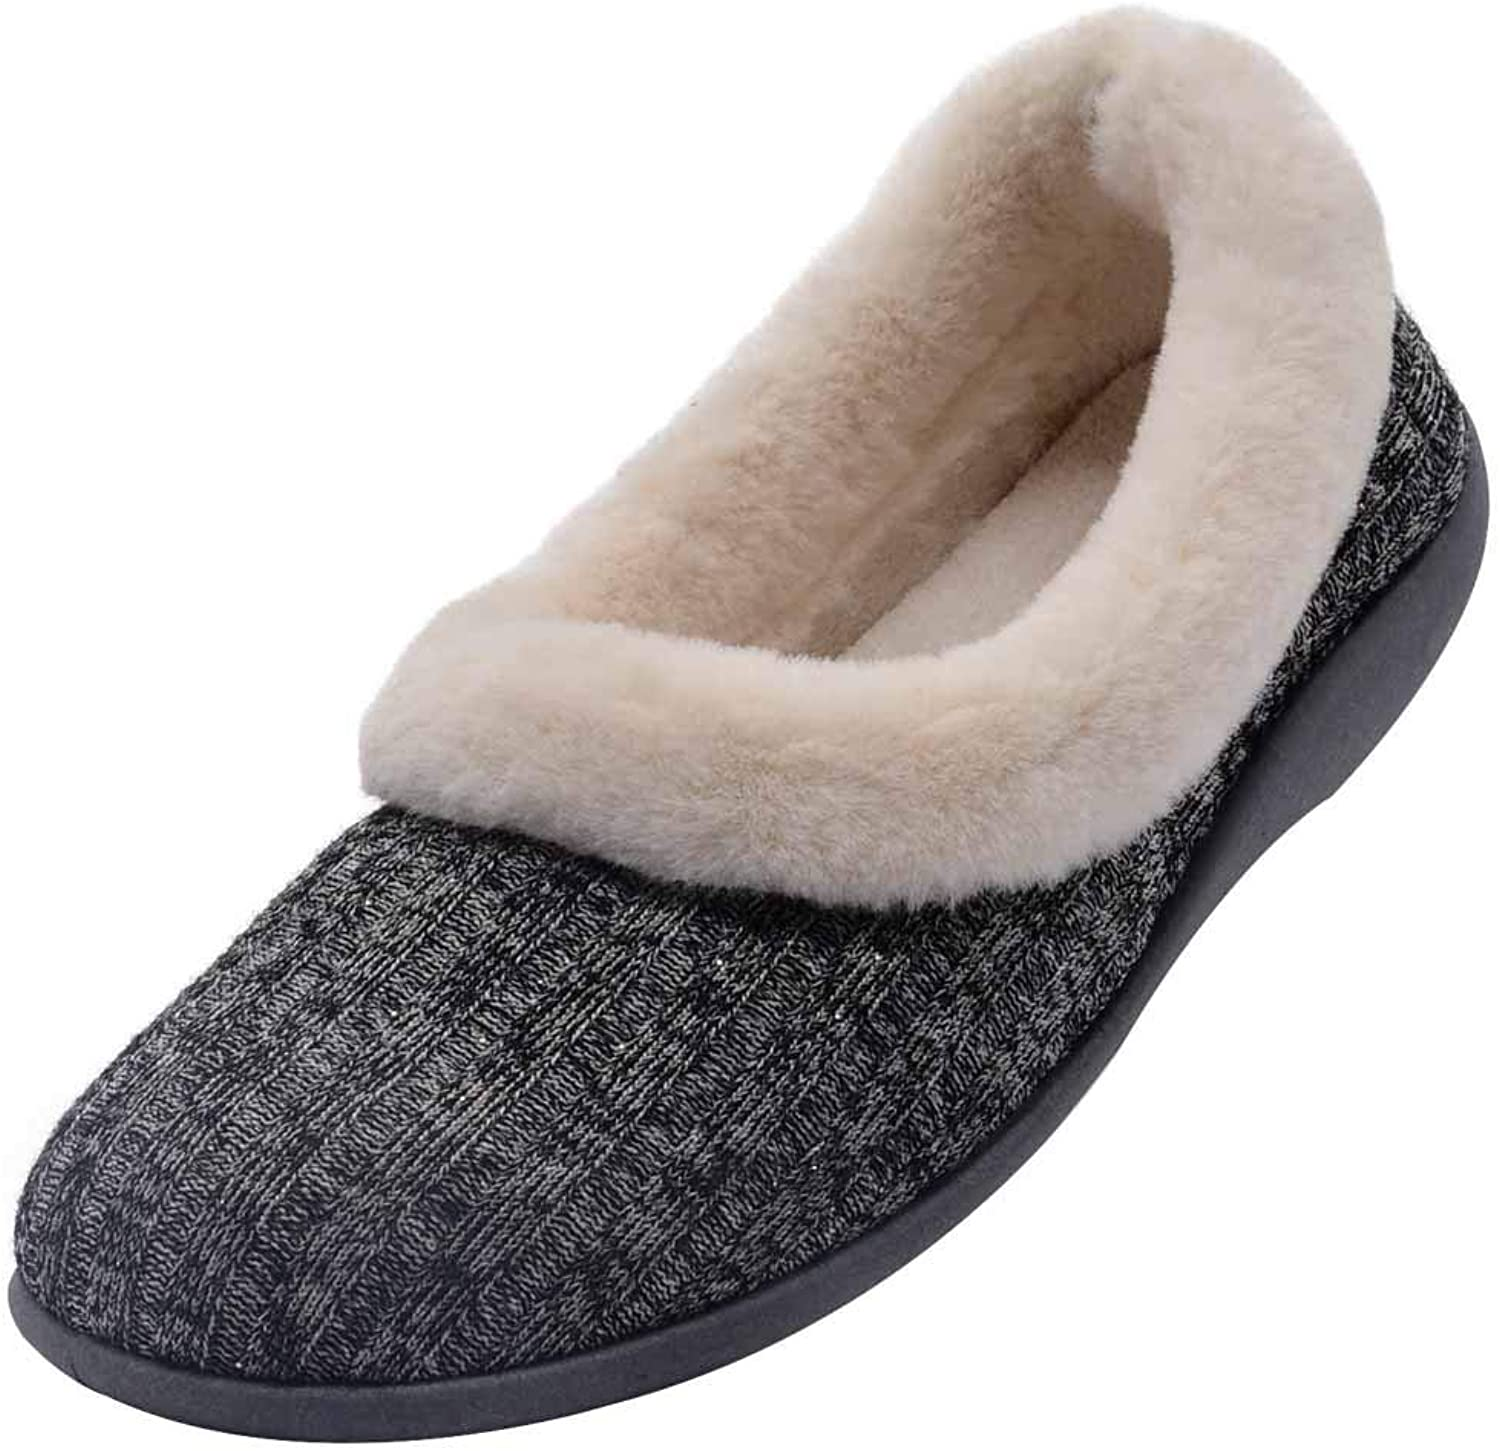 Wishcotton Women's Fuzzy Collar Soft Sole Slippers, House shoes with Cotton Knit Upper